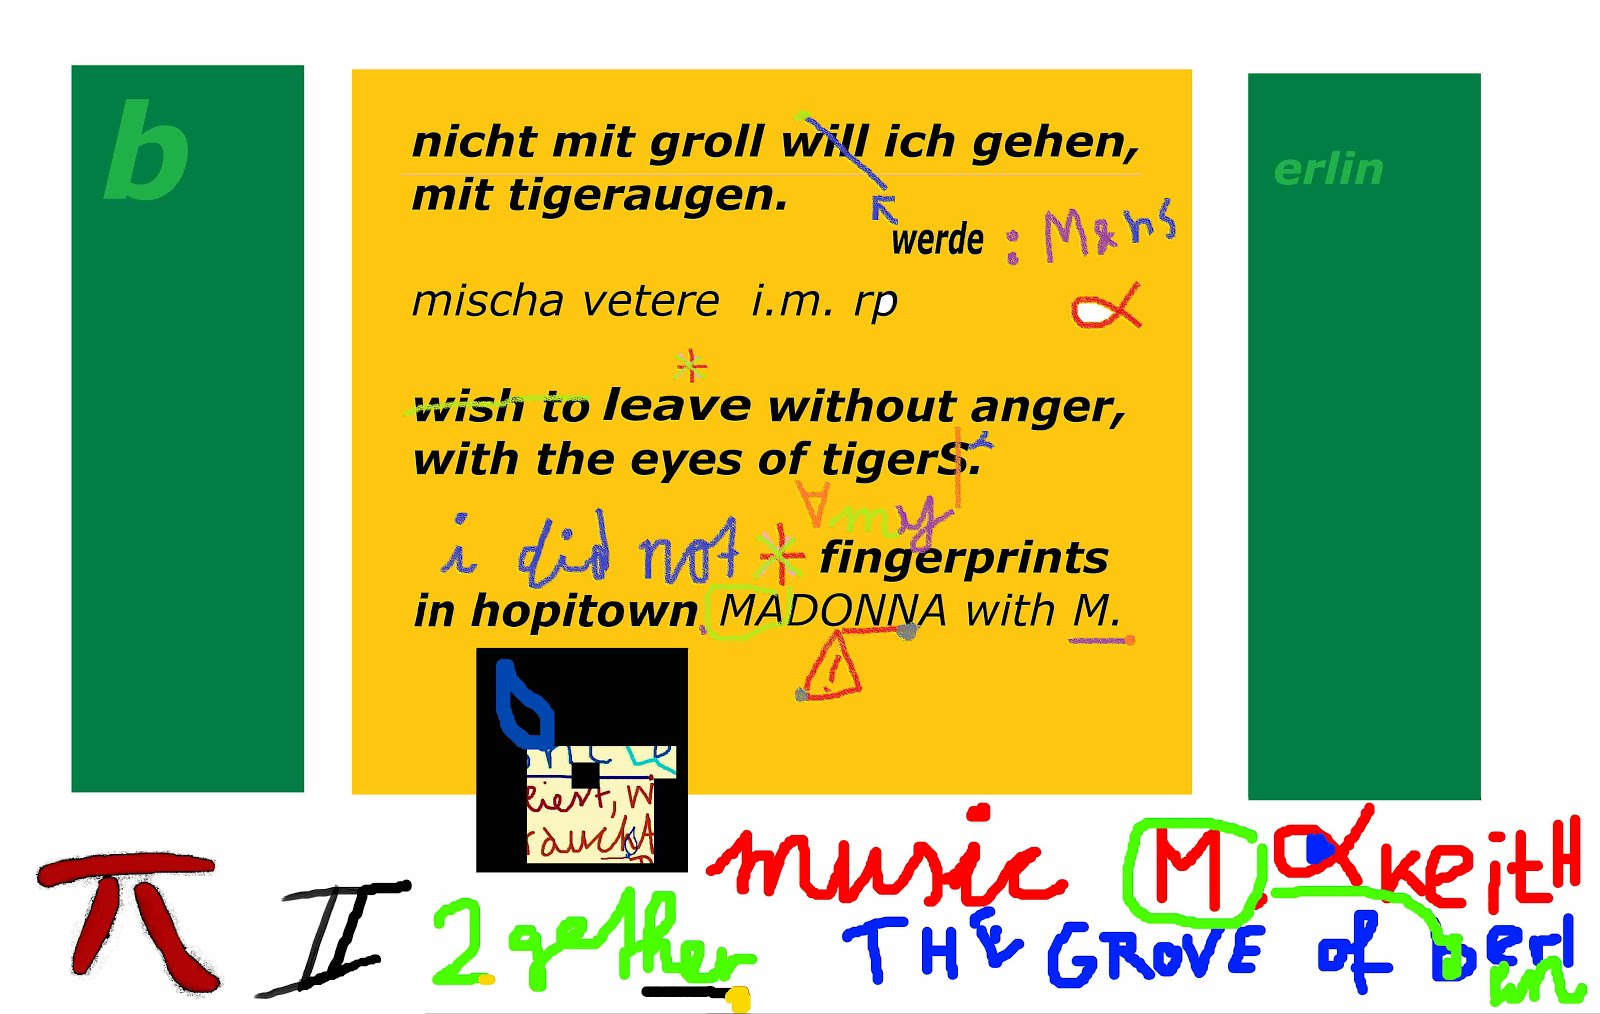 madonna THE MENTAL REVOLUTION mischa vetere karl lagerfeld berlin germany fingerprints DIVAbusiness